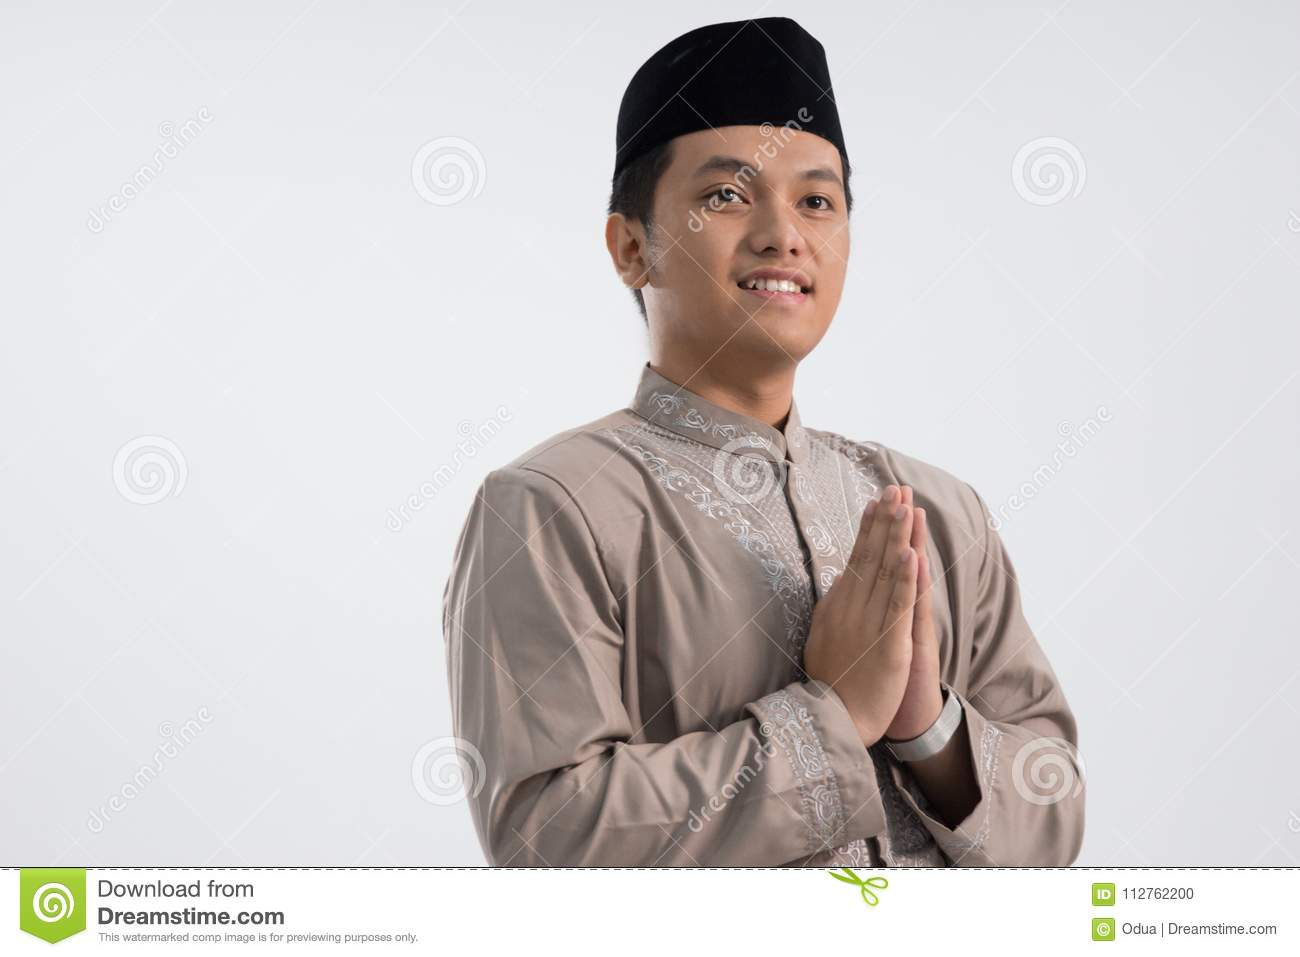 Religious man muslim stock photo image of dress good 112762200 religious man muslim m4hsunfo